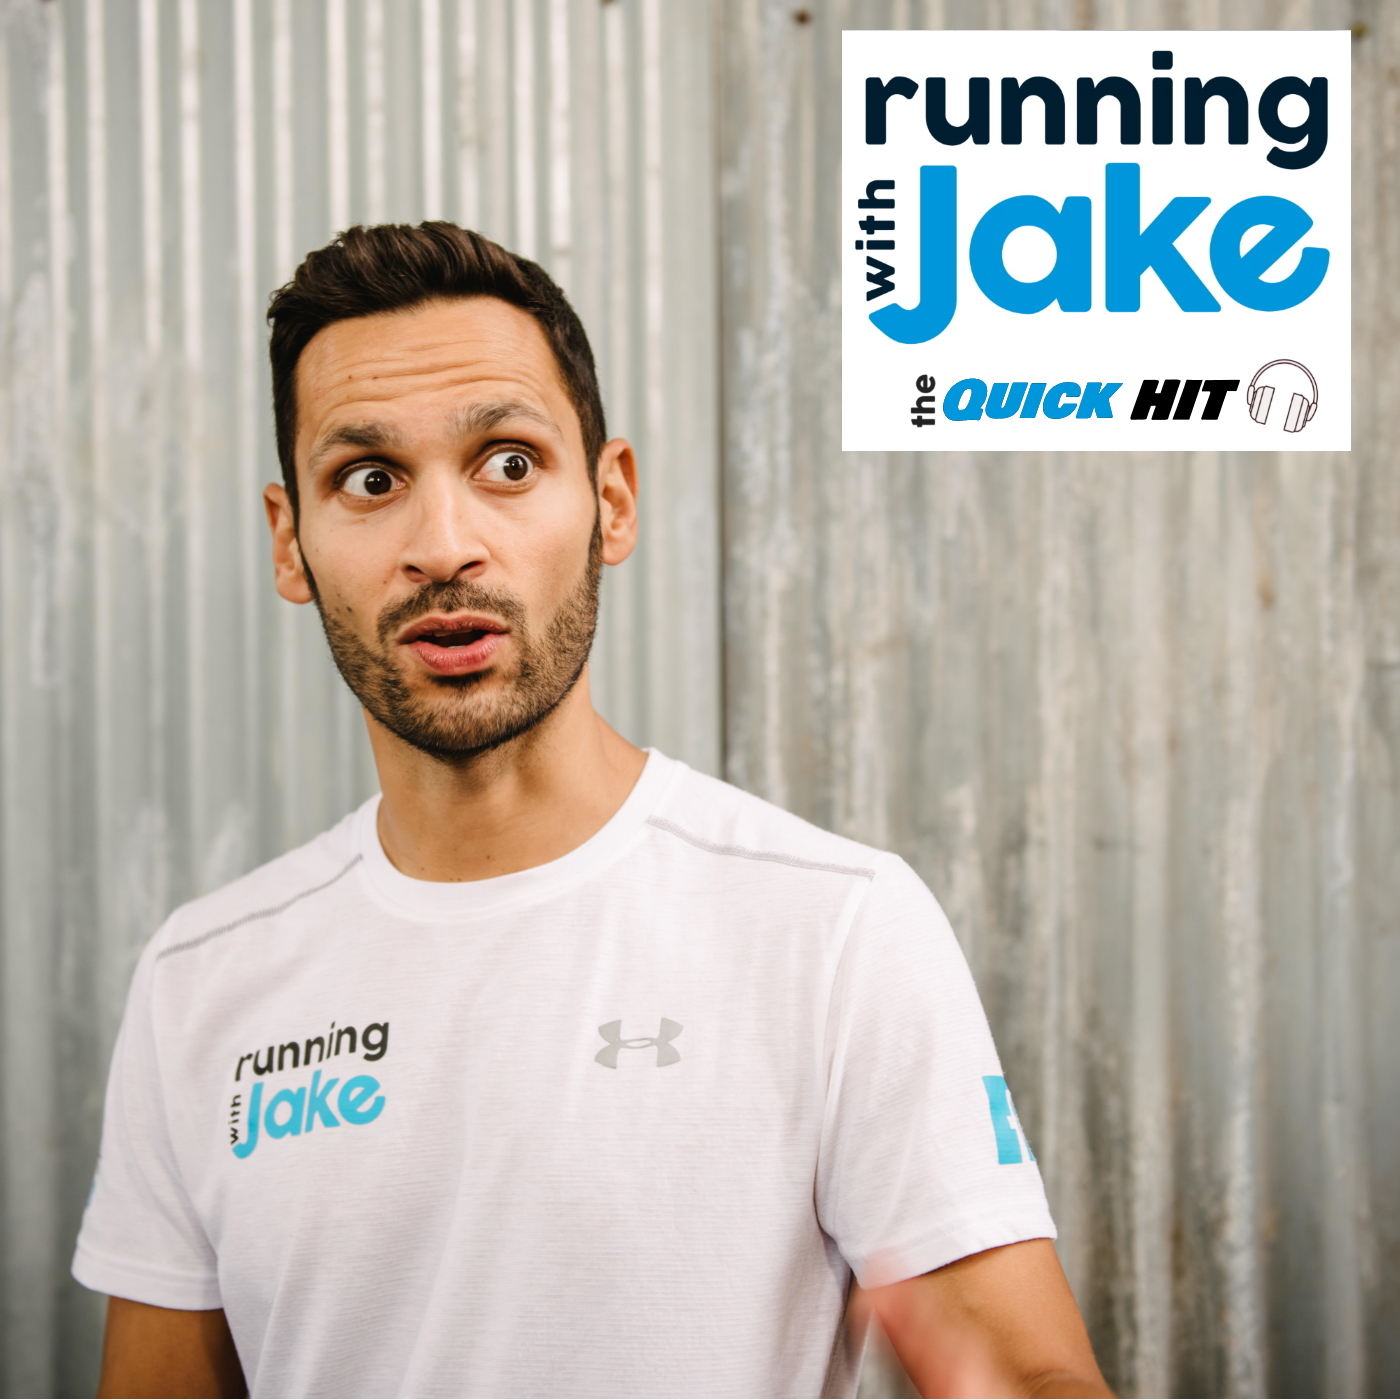 Running with Jake - The QUICK Hit (Common question - Surprising answer!)